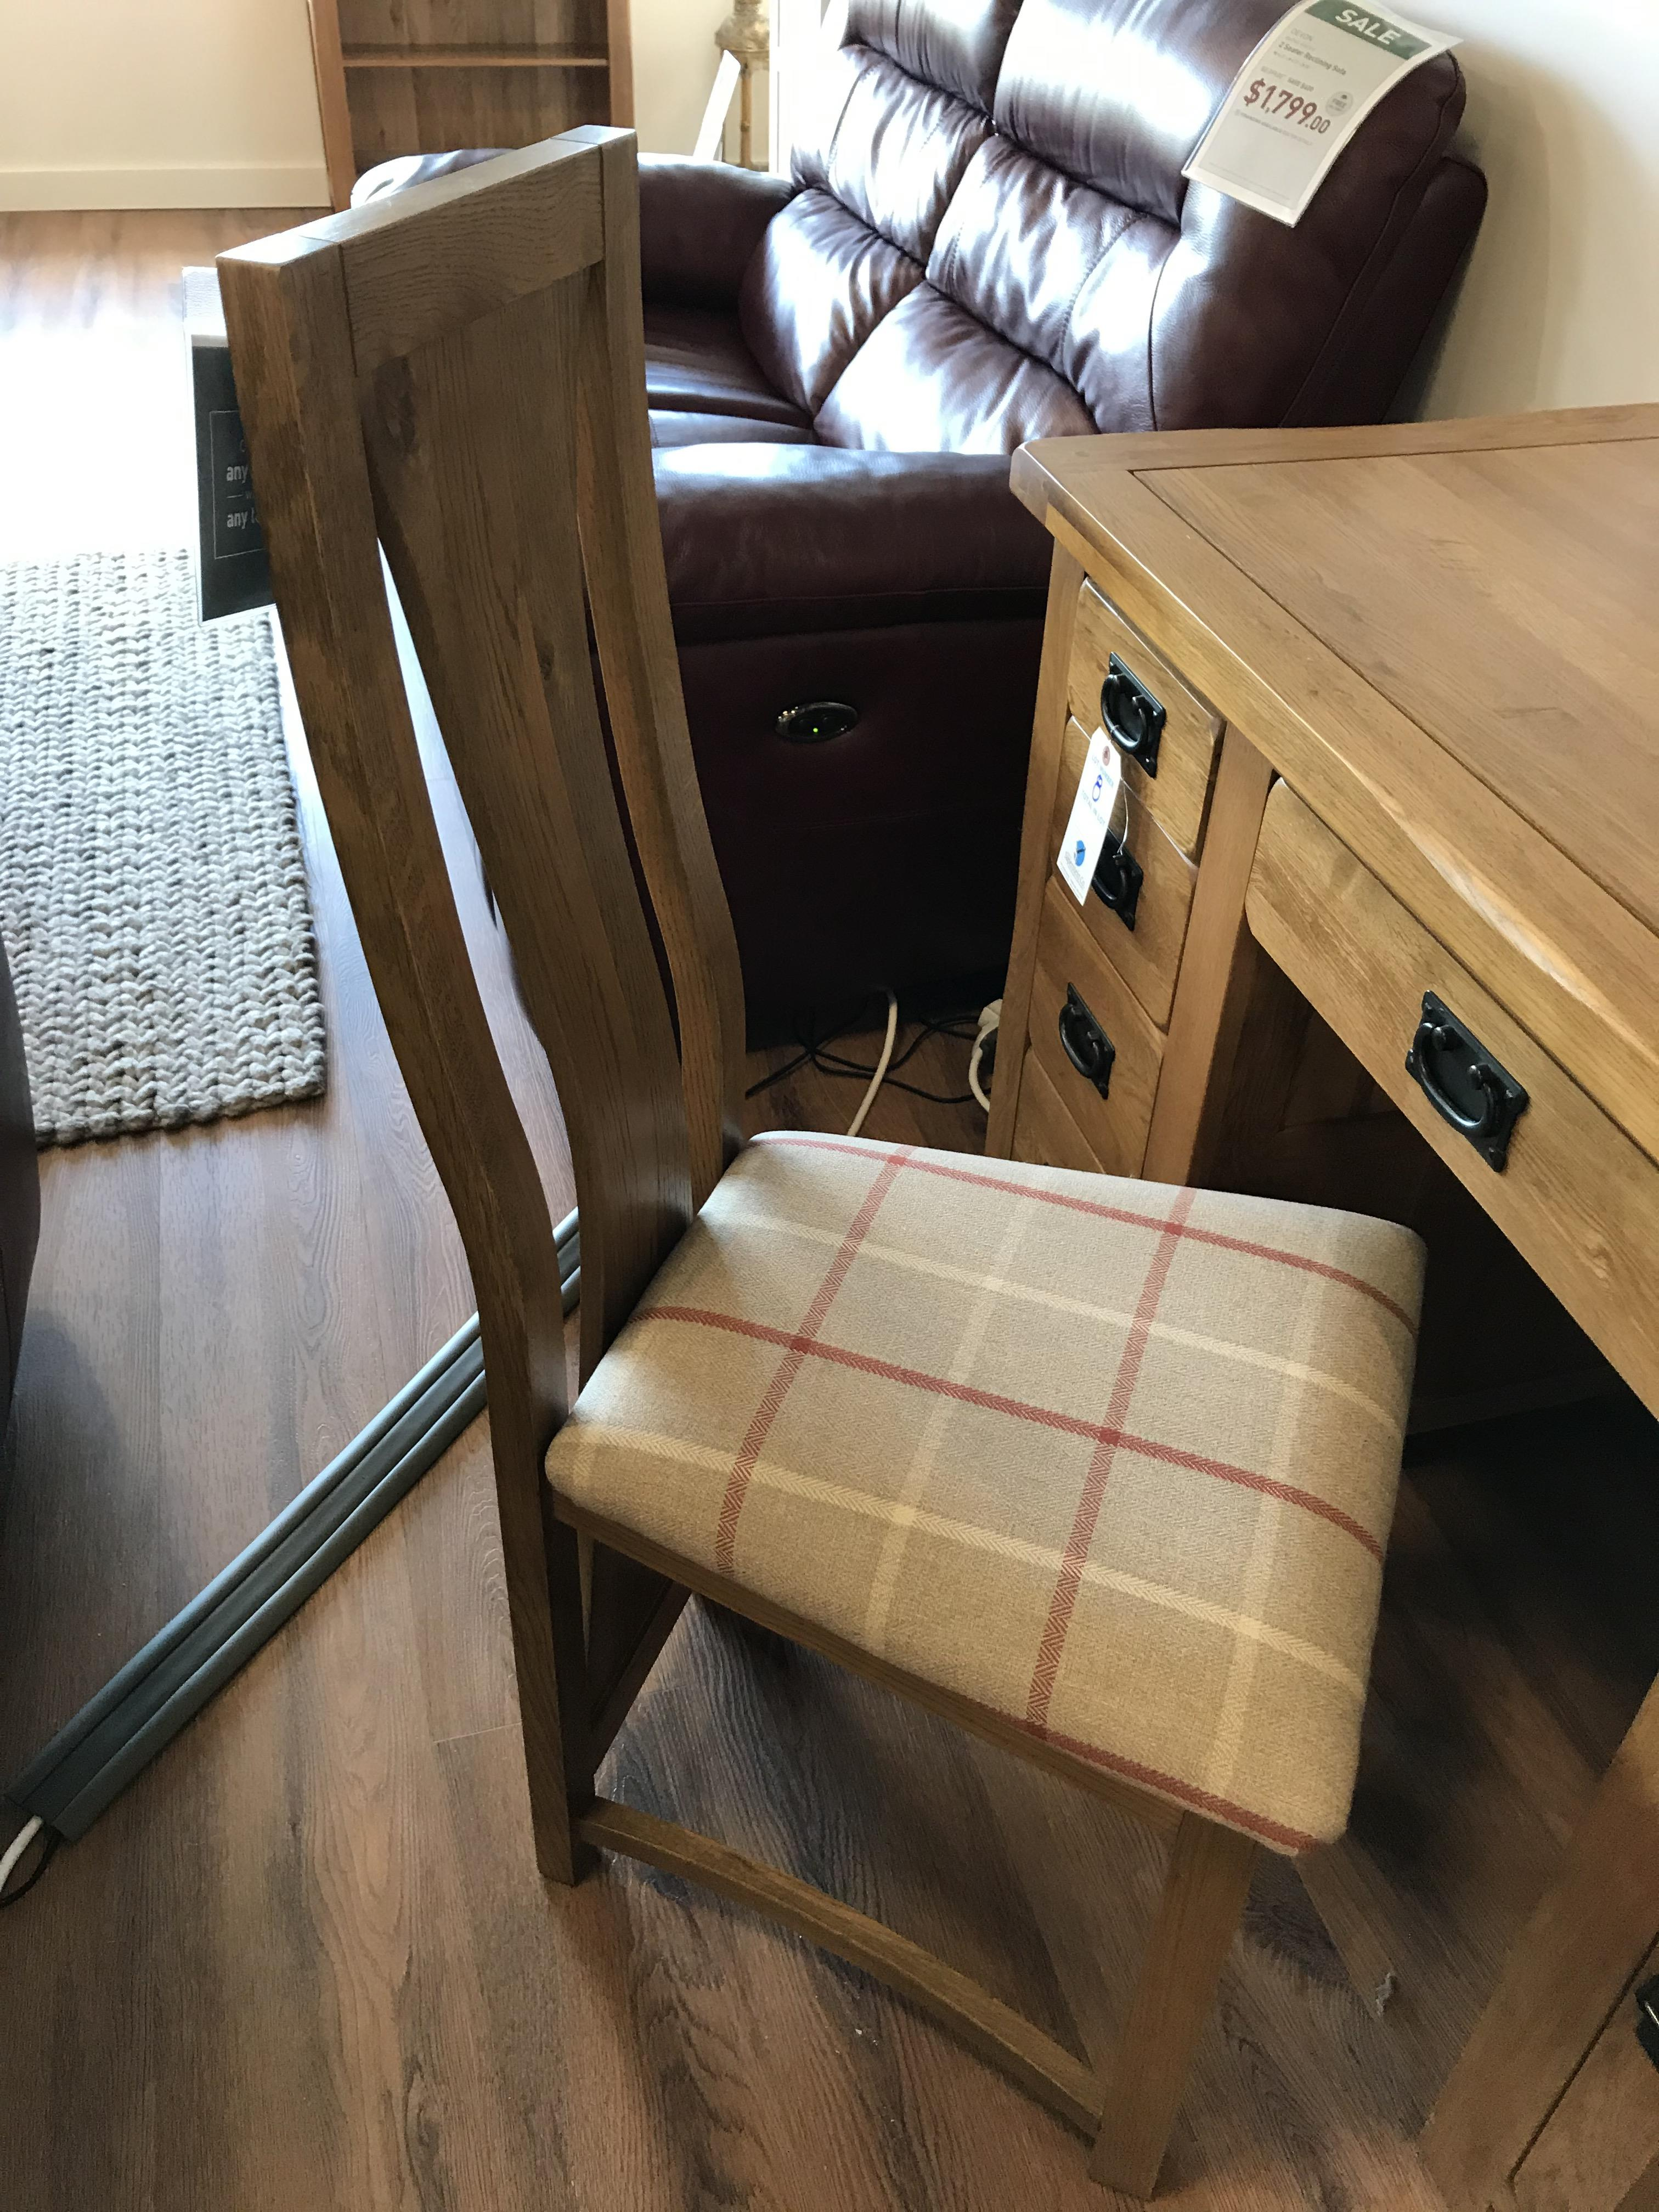 Solid Hardwood Chair (Original Rustic) See Picture For Dimensions and Product Info